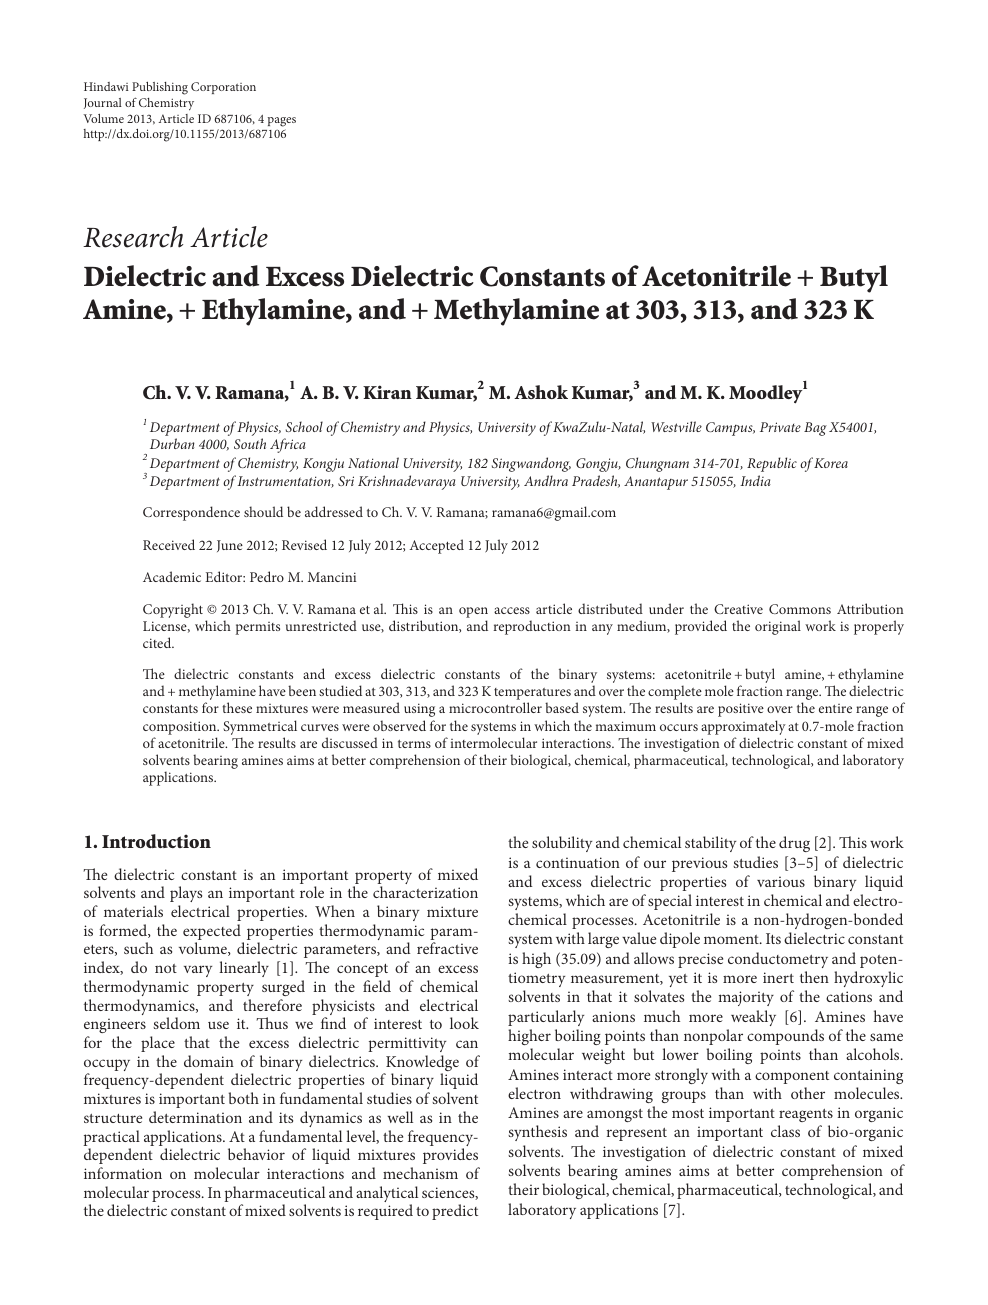 Dielectric and Excess Dielectric Constants of Acetonitrile +